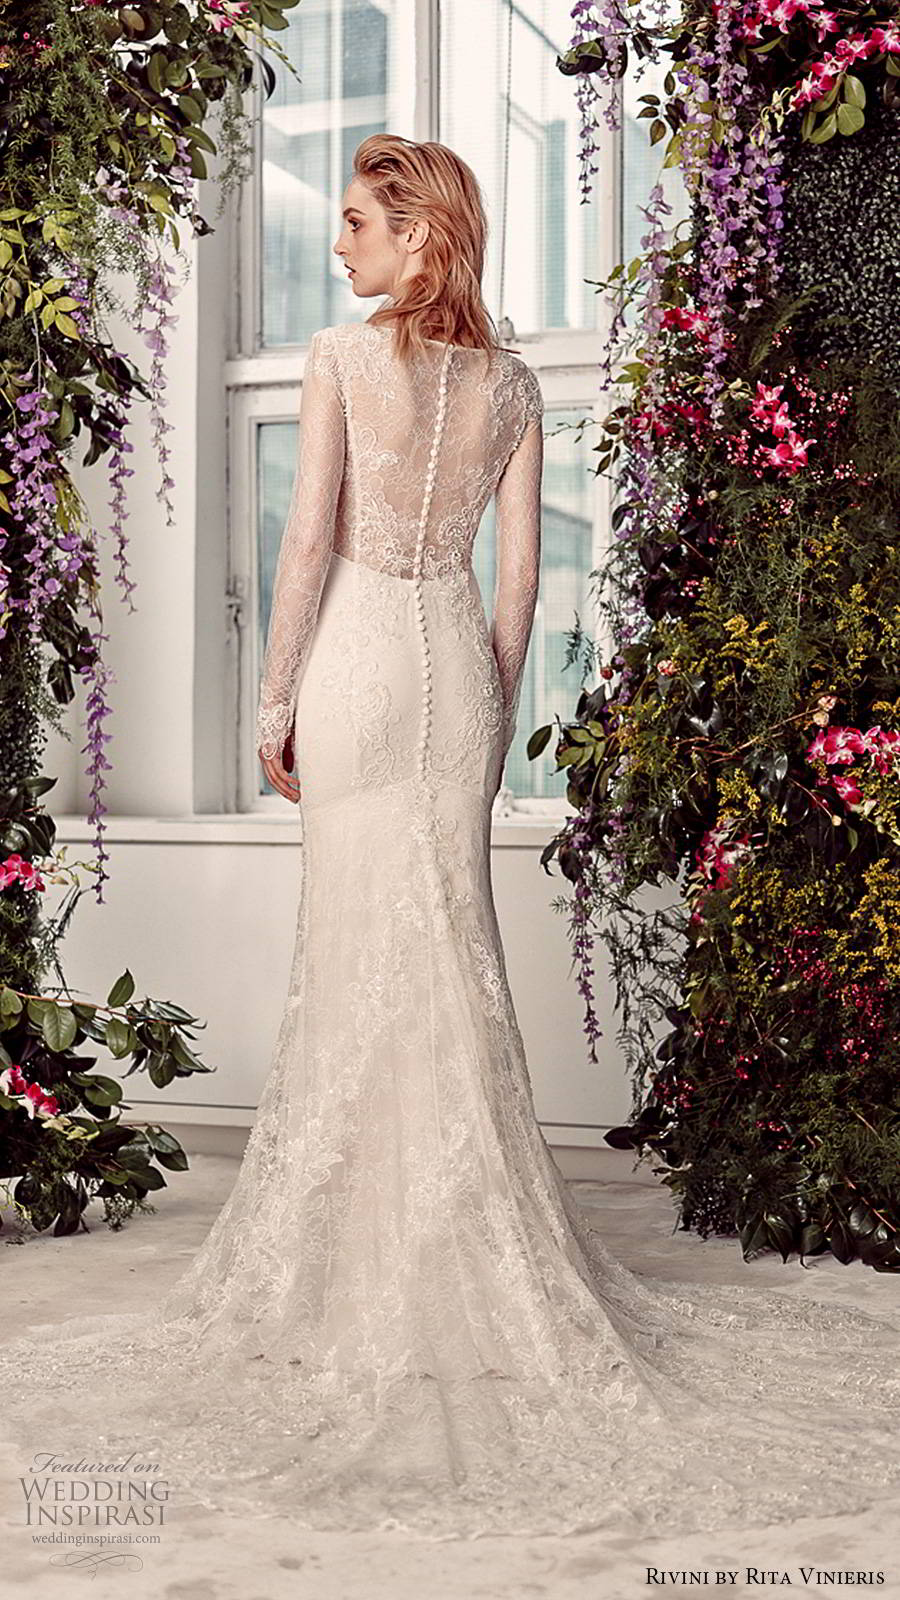 rivini by rita vinieris spring 2020 bridal illusion long sleeves plunging v neckline fully embellished lace elegant sheath fit flare wedding dress (4) bv